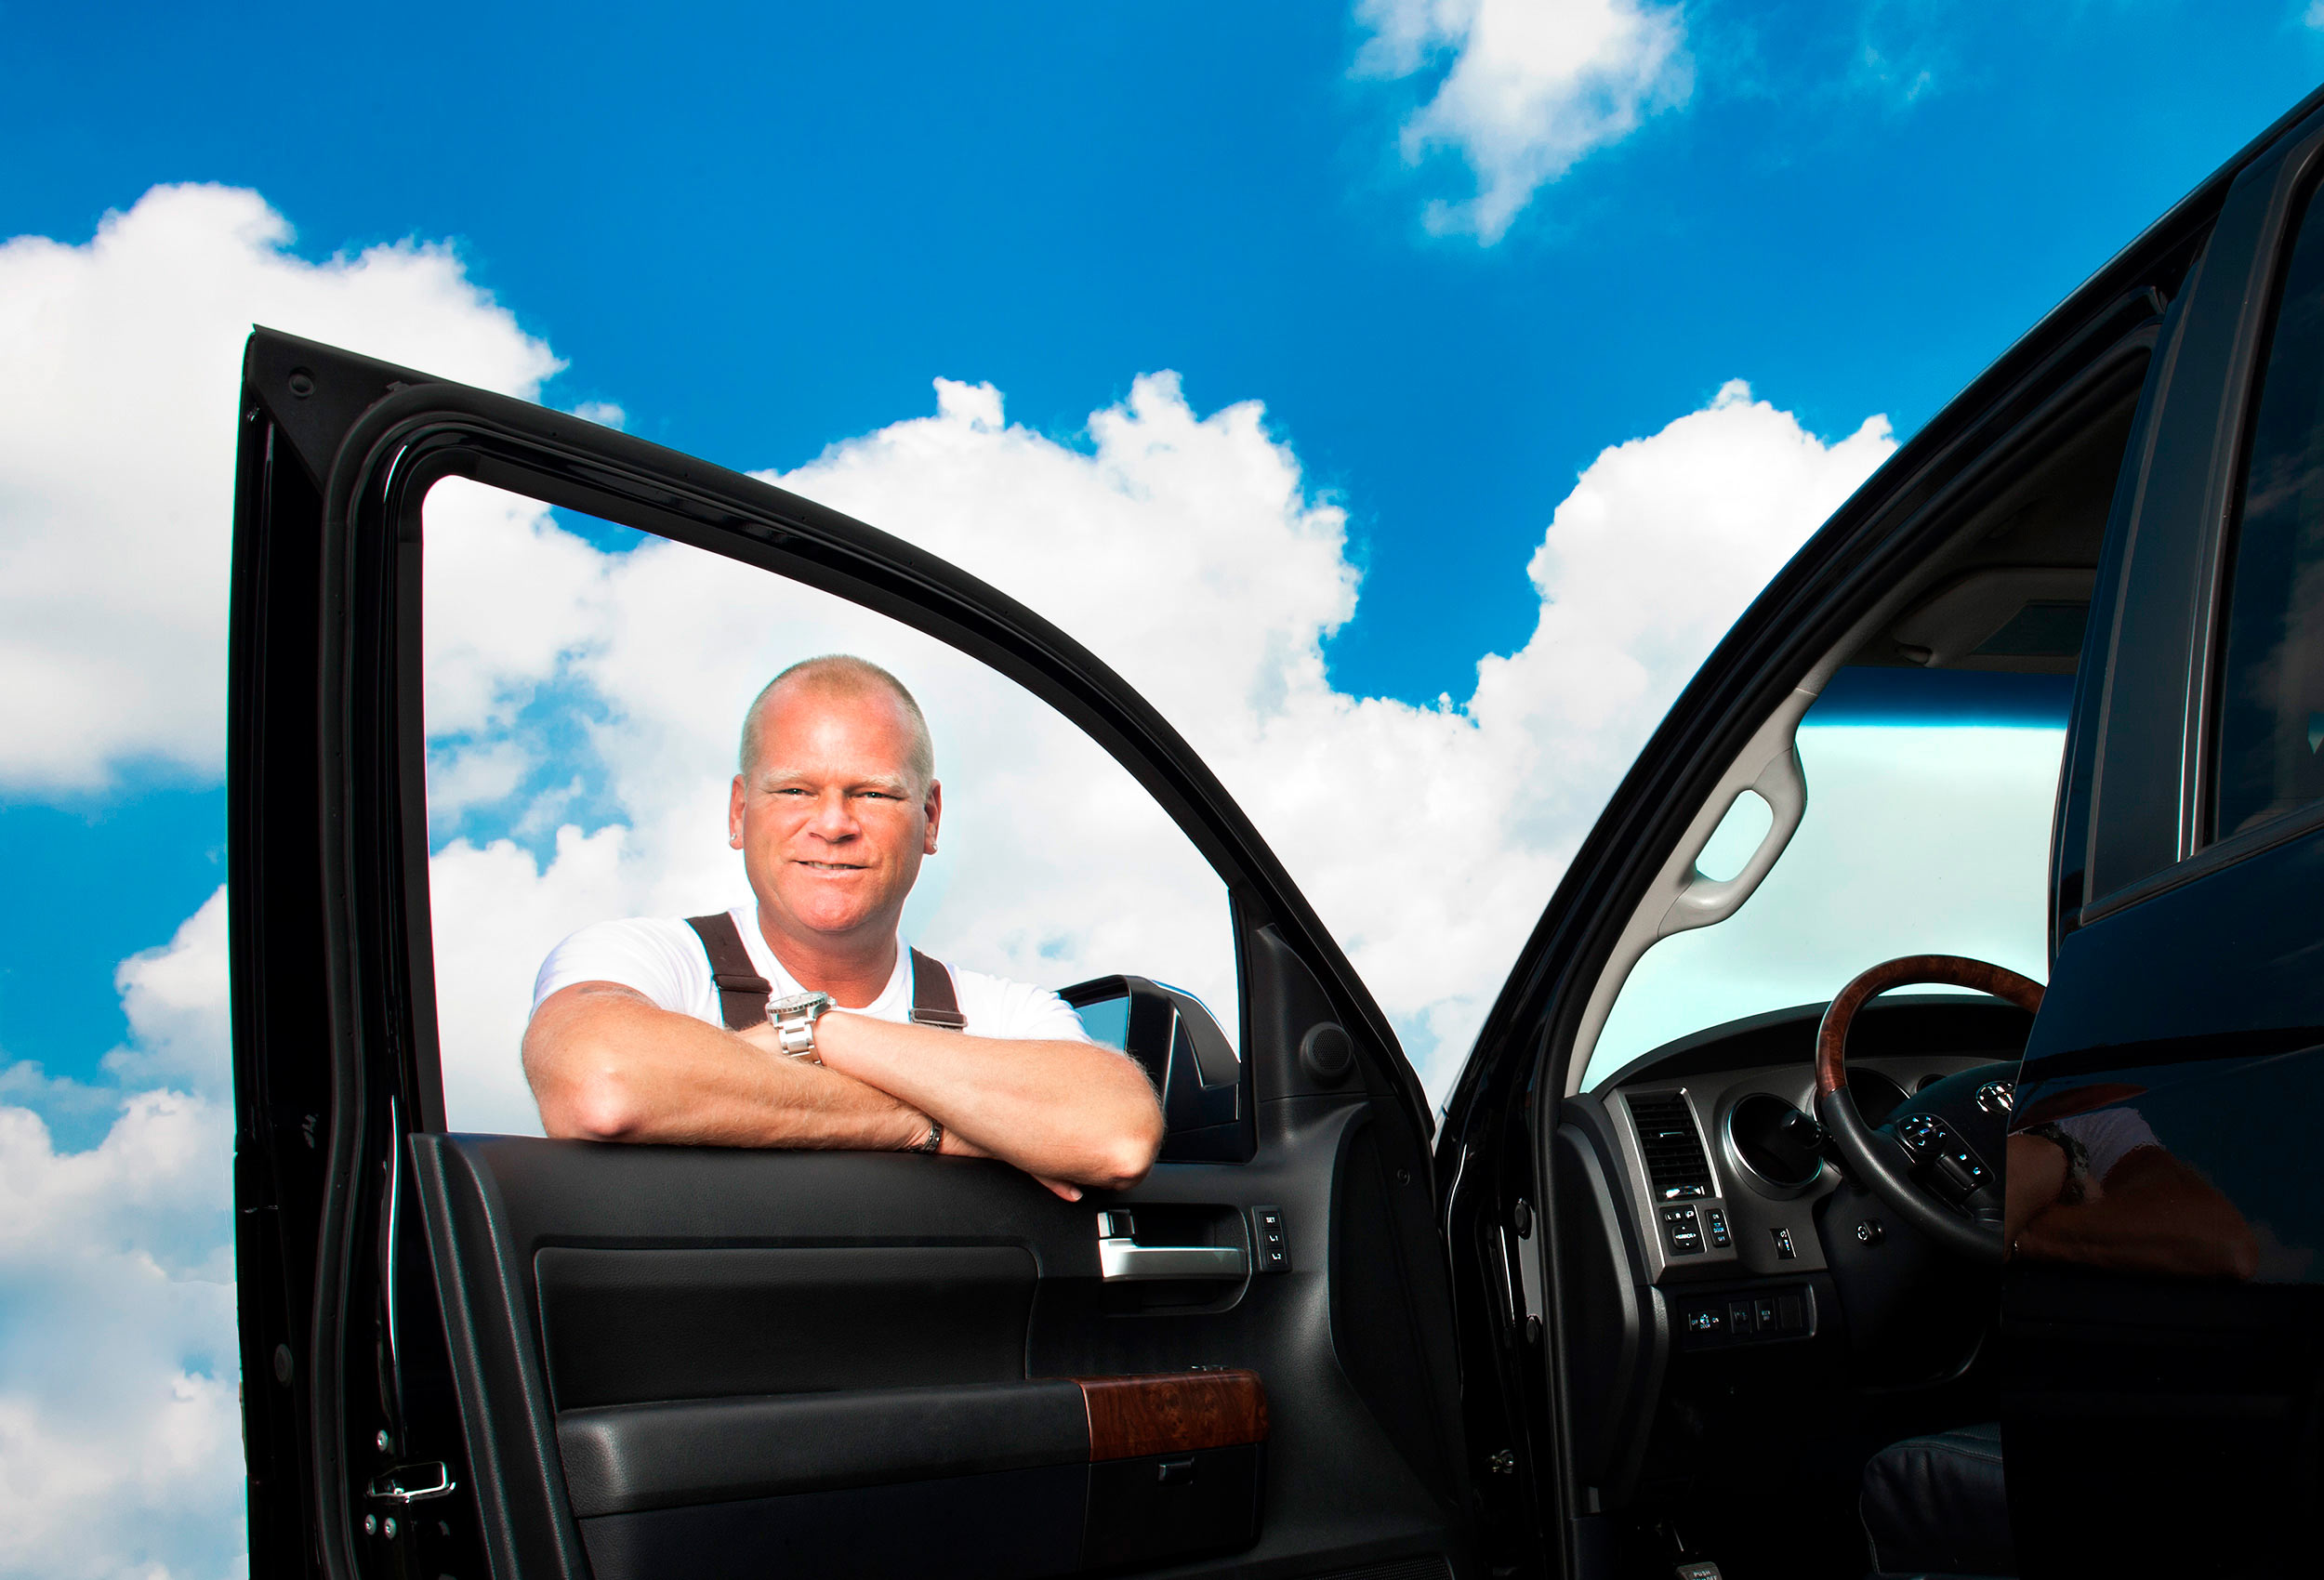 hgtv personality mike holmes poses for a celebrity photo in toronto